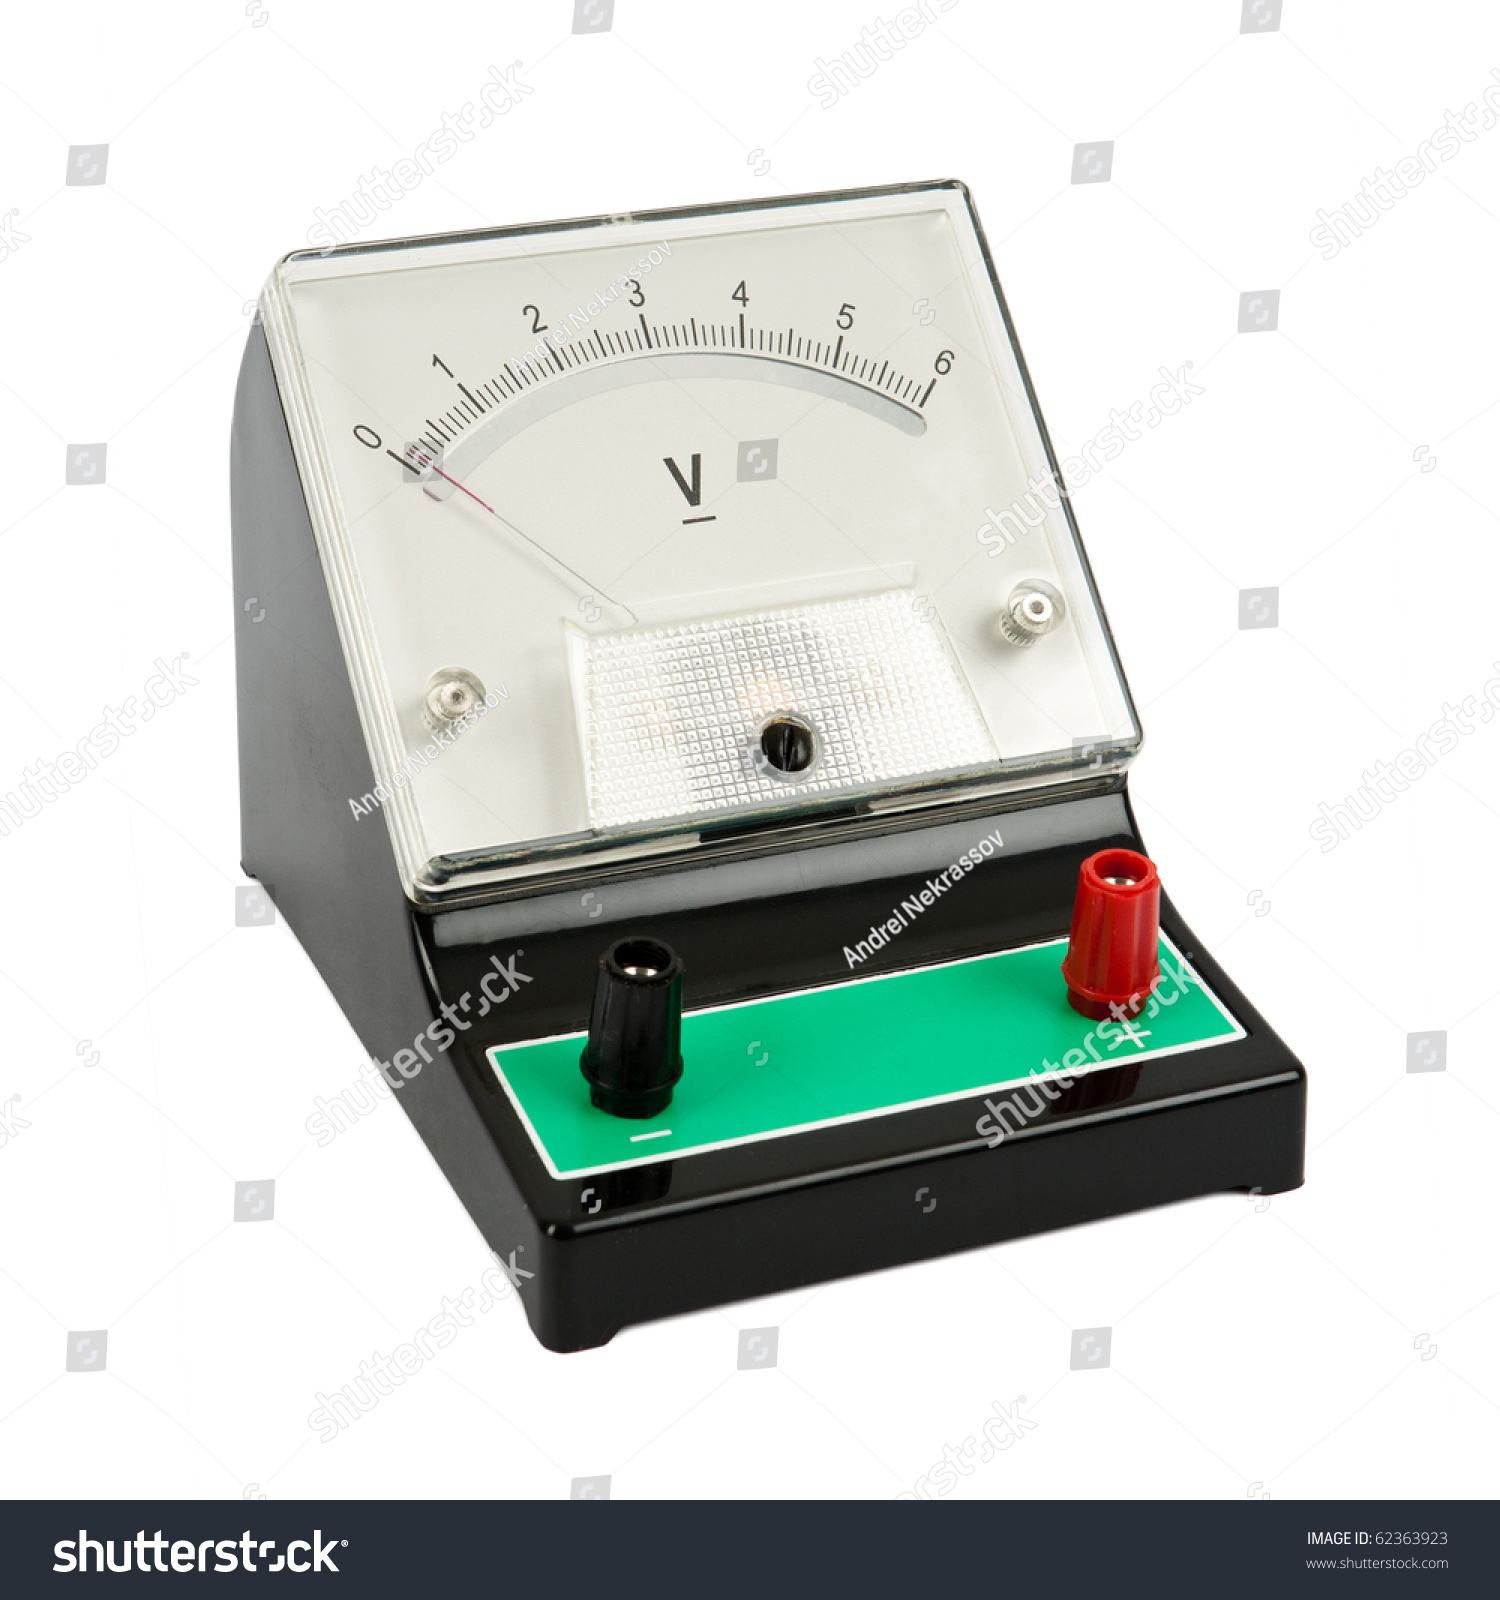 Analog Meter Background : School voltmeter isolated on white background stock photo